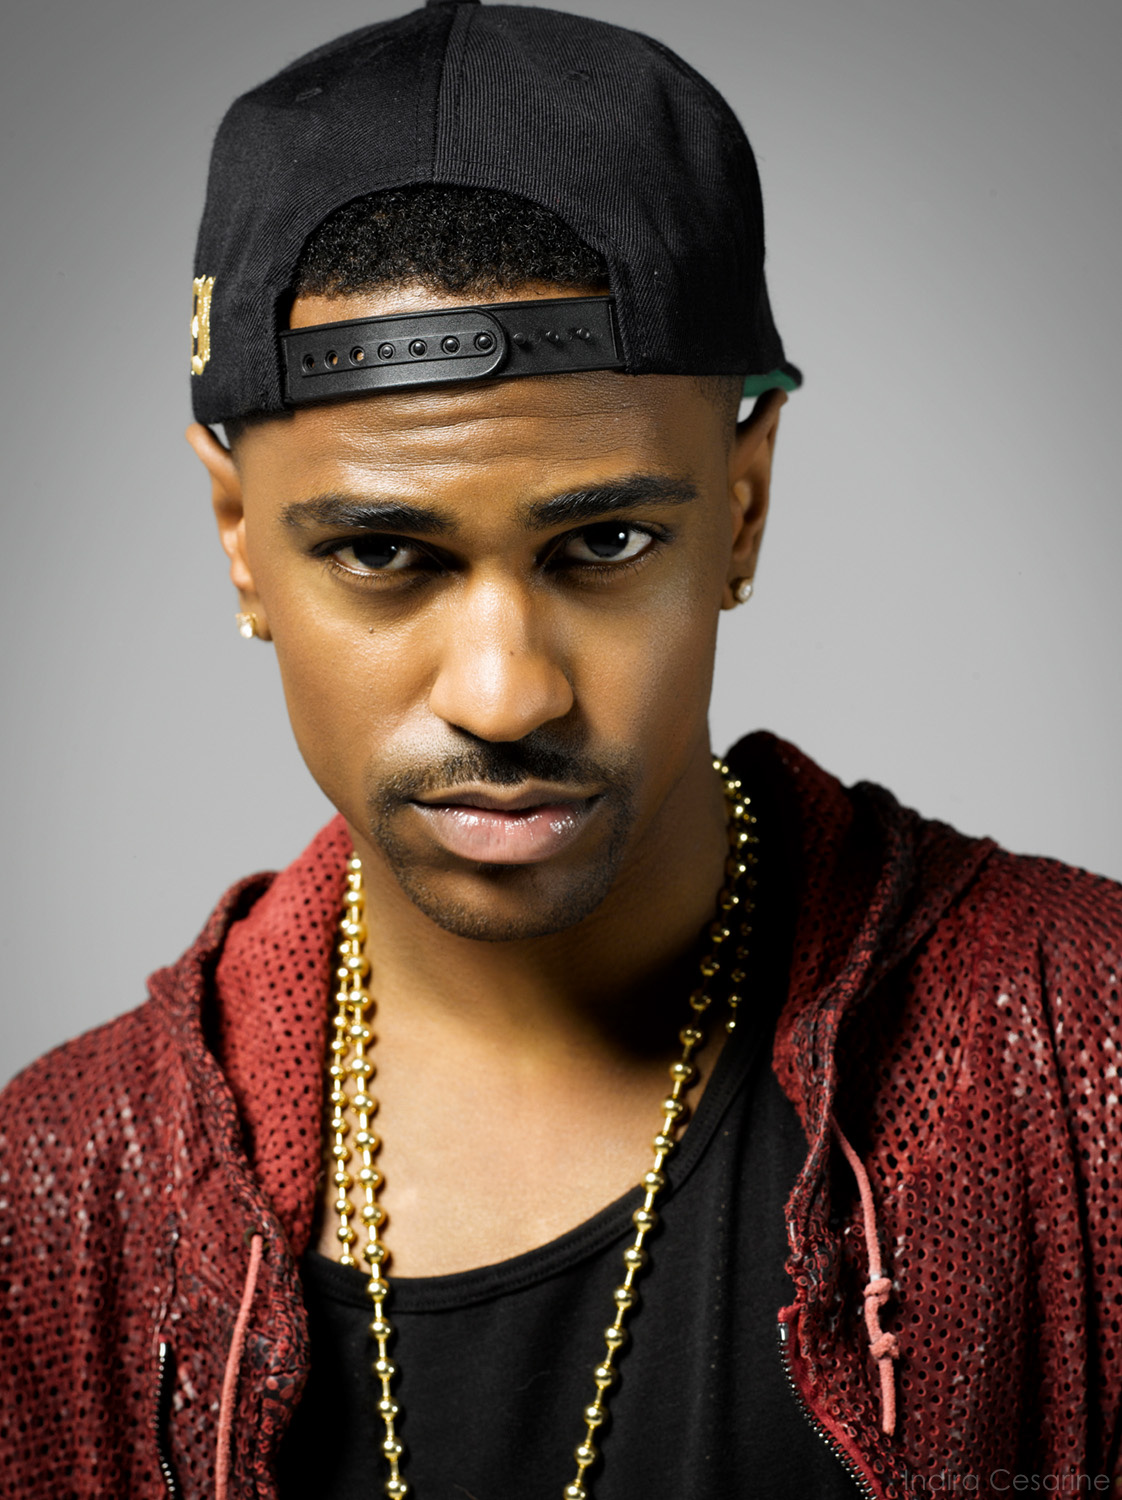 Big-Sean@Indira-Cesarine-3-IC.jpg